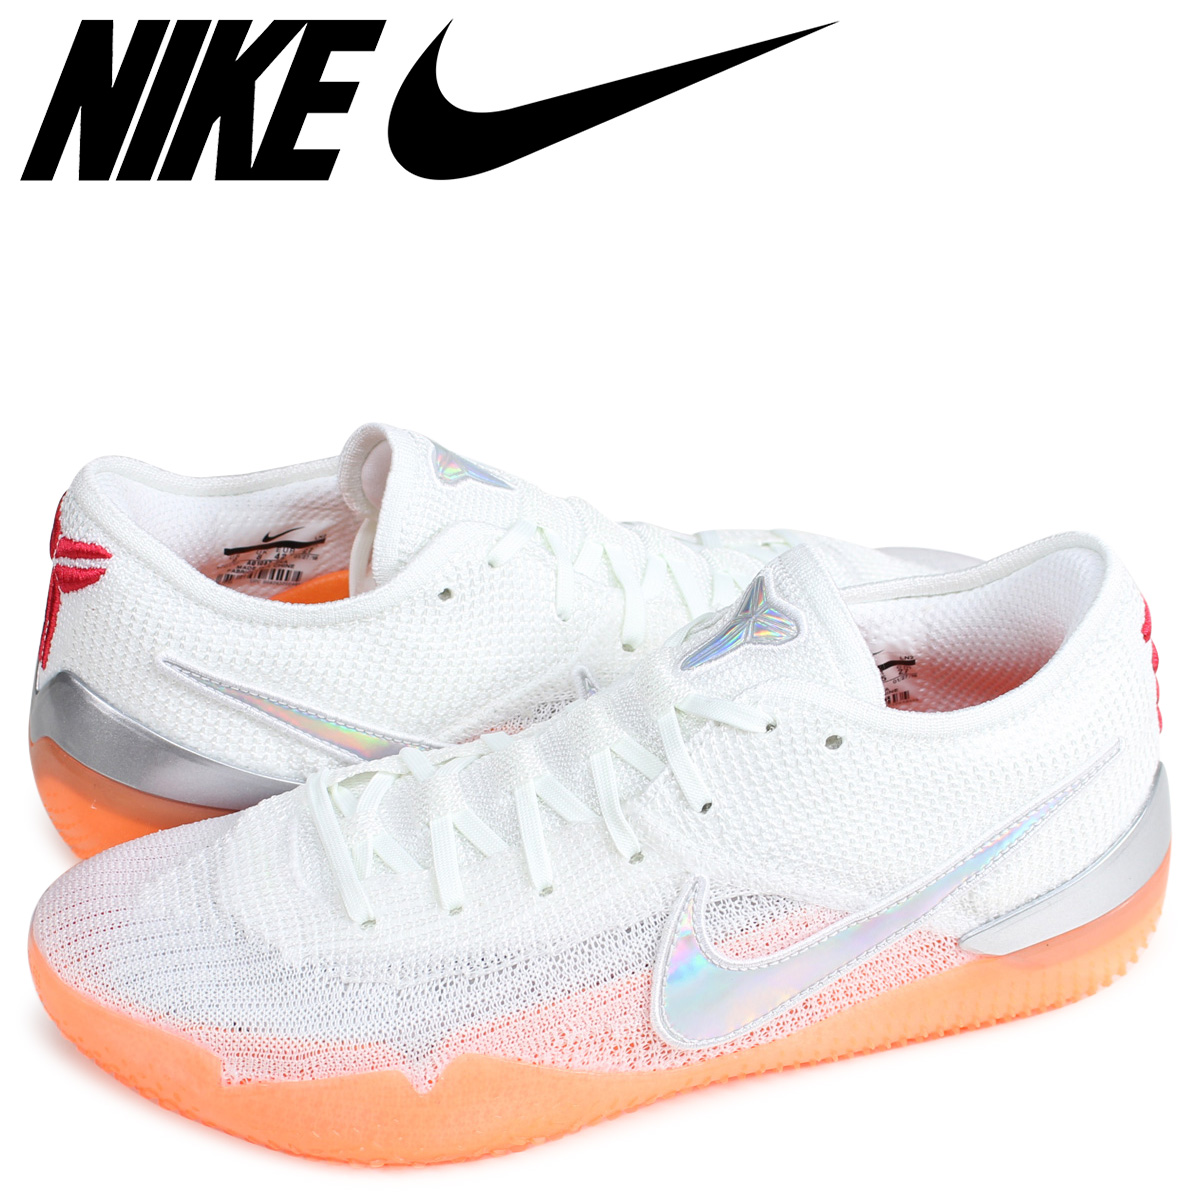 finest selection 6000b 82e78 NIKE KOBE AD NXT 360 Nike Corby sneakers men AQ1087-100 white [187]